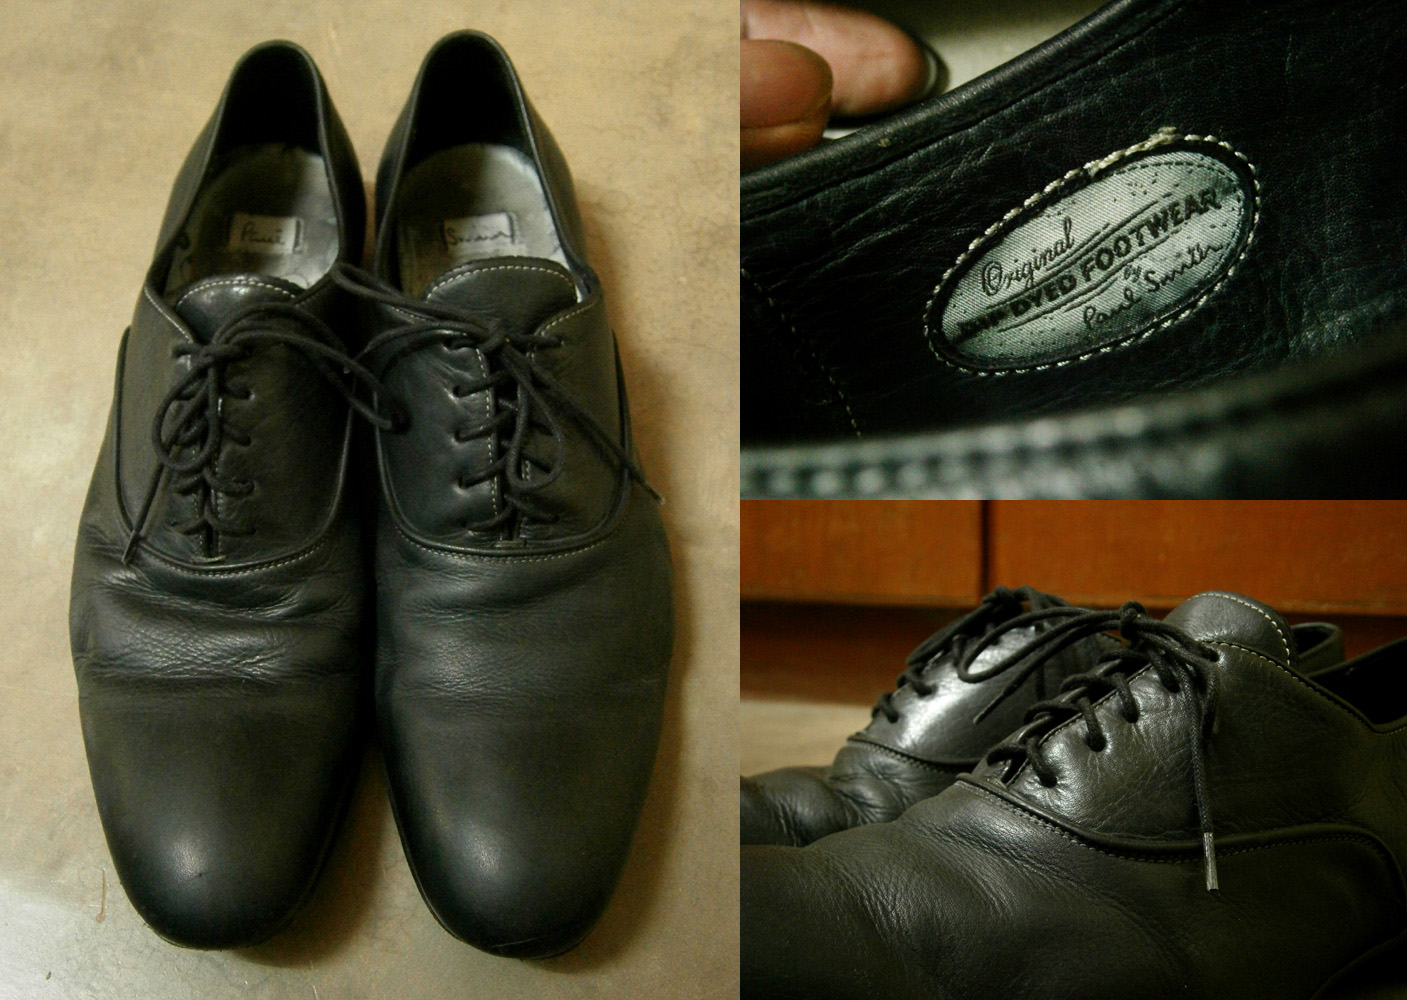 Black Paul Smith Dip Dyed Cervantes Oxford Shoes and details - Original Dip Dyed Footwear